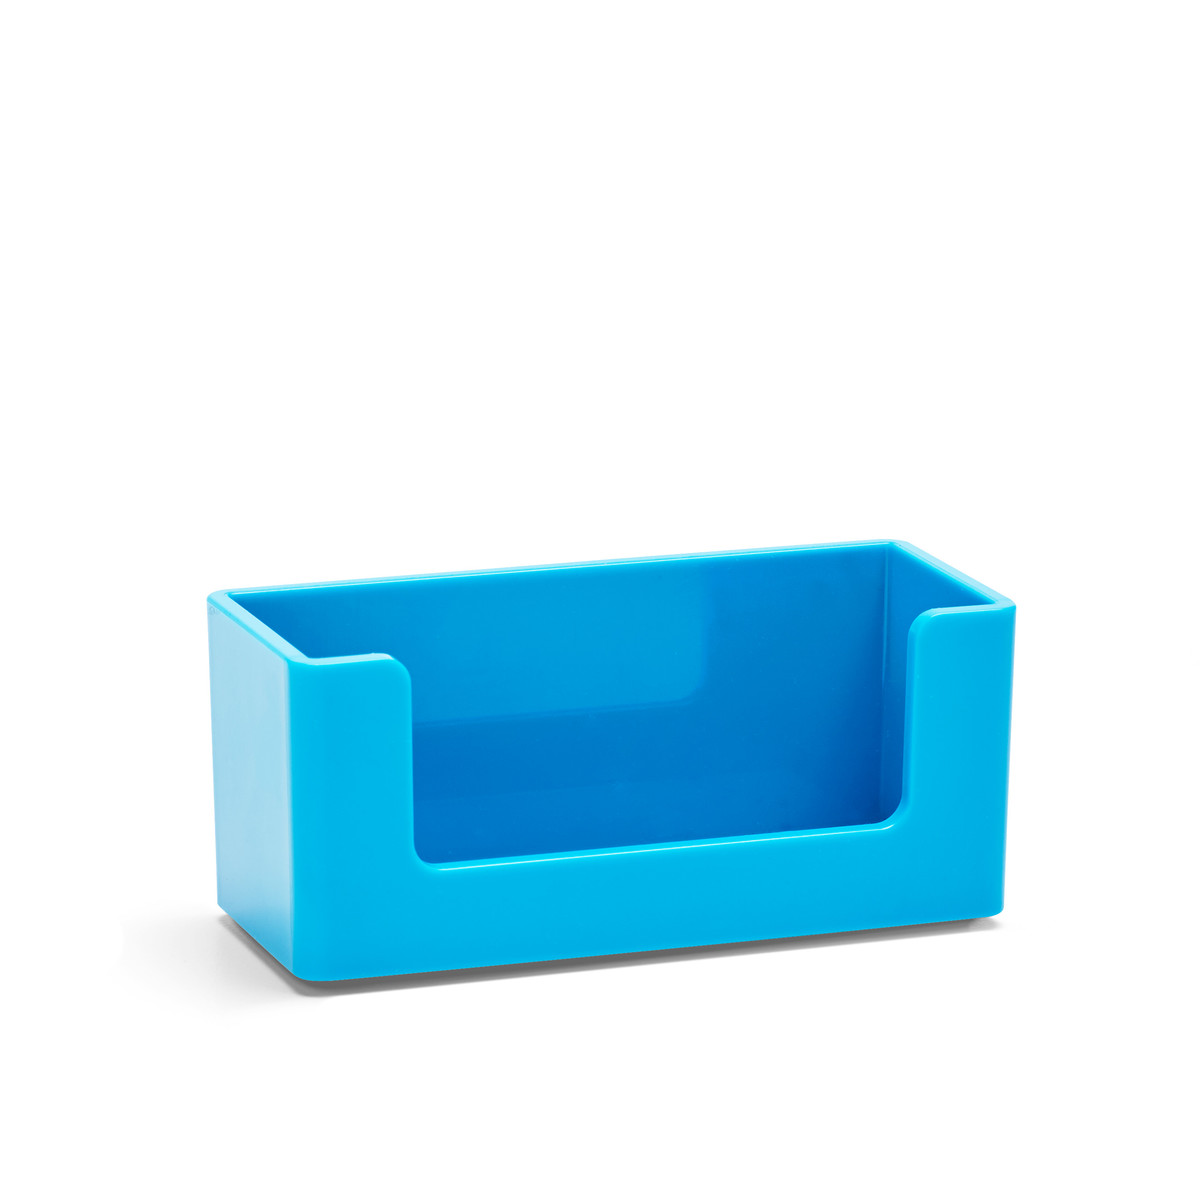 Pool Blue Business Card Holder| Desk Accessories & Organization | Poppin